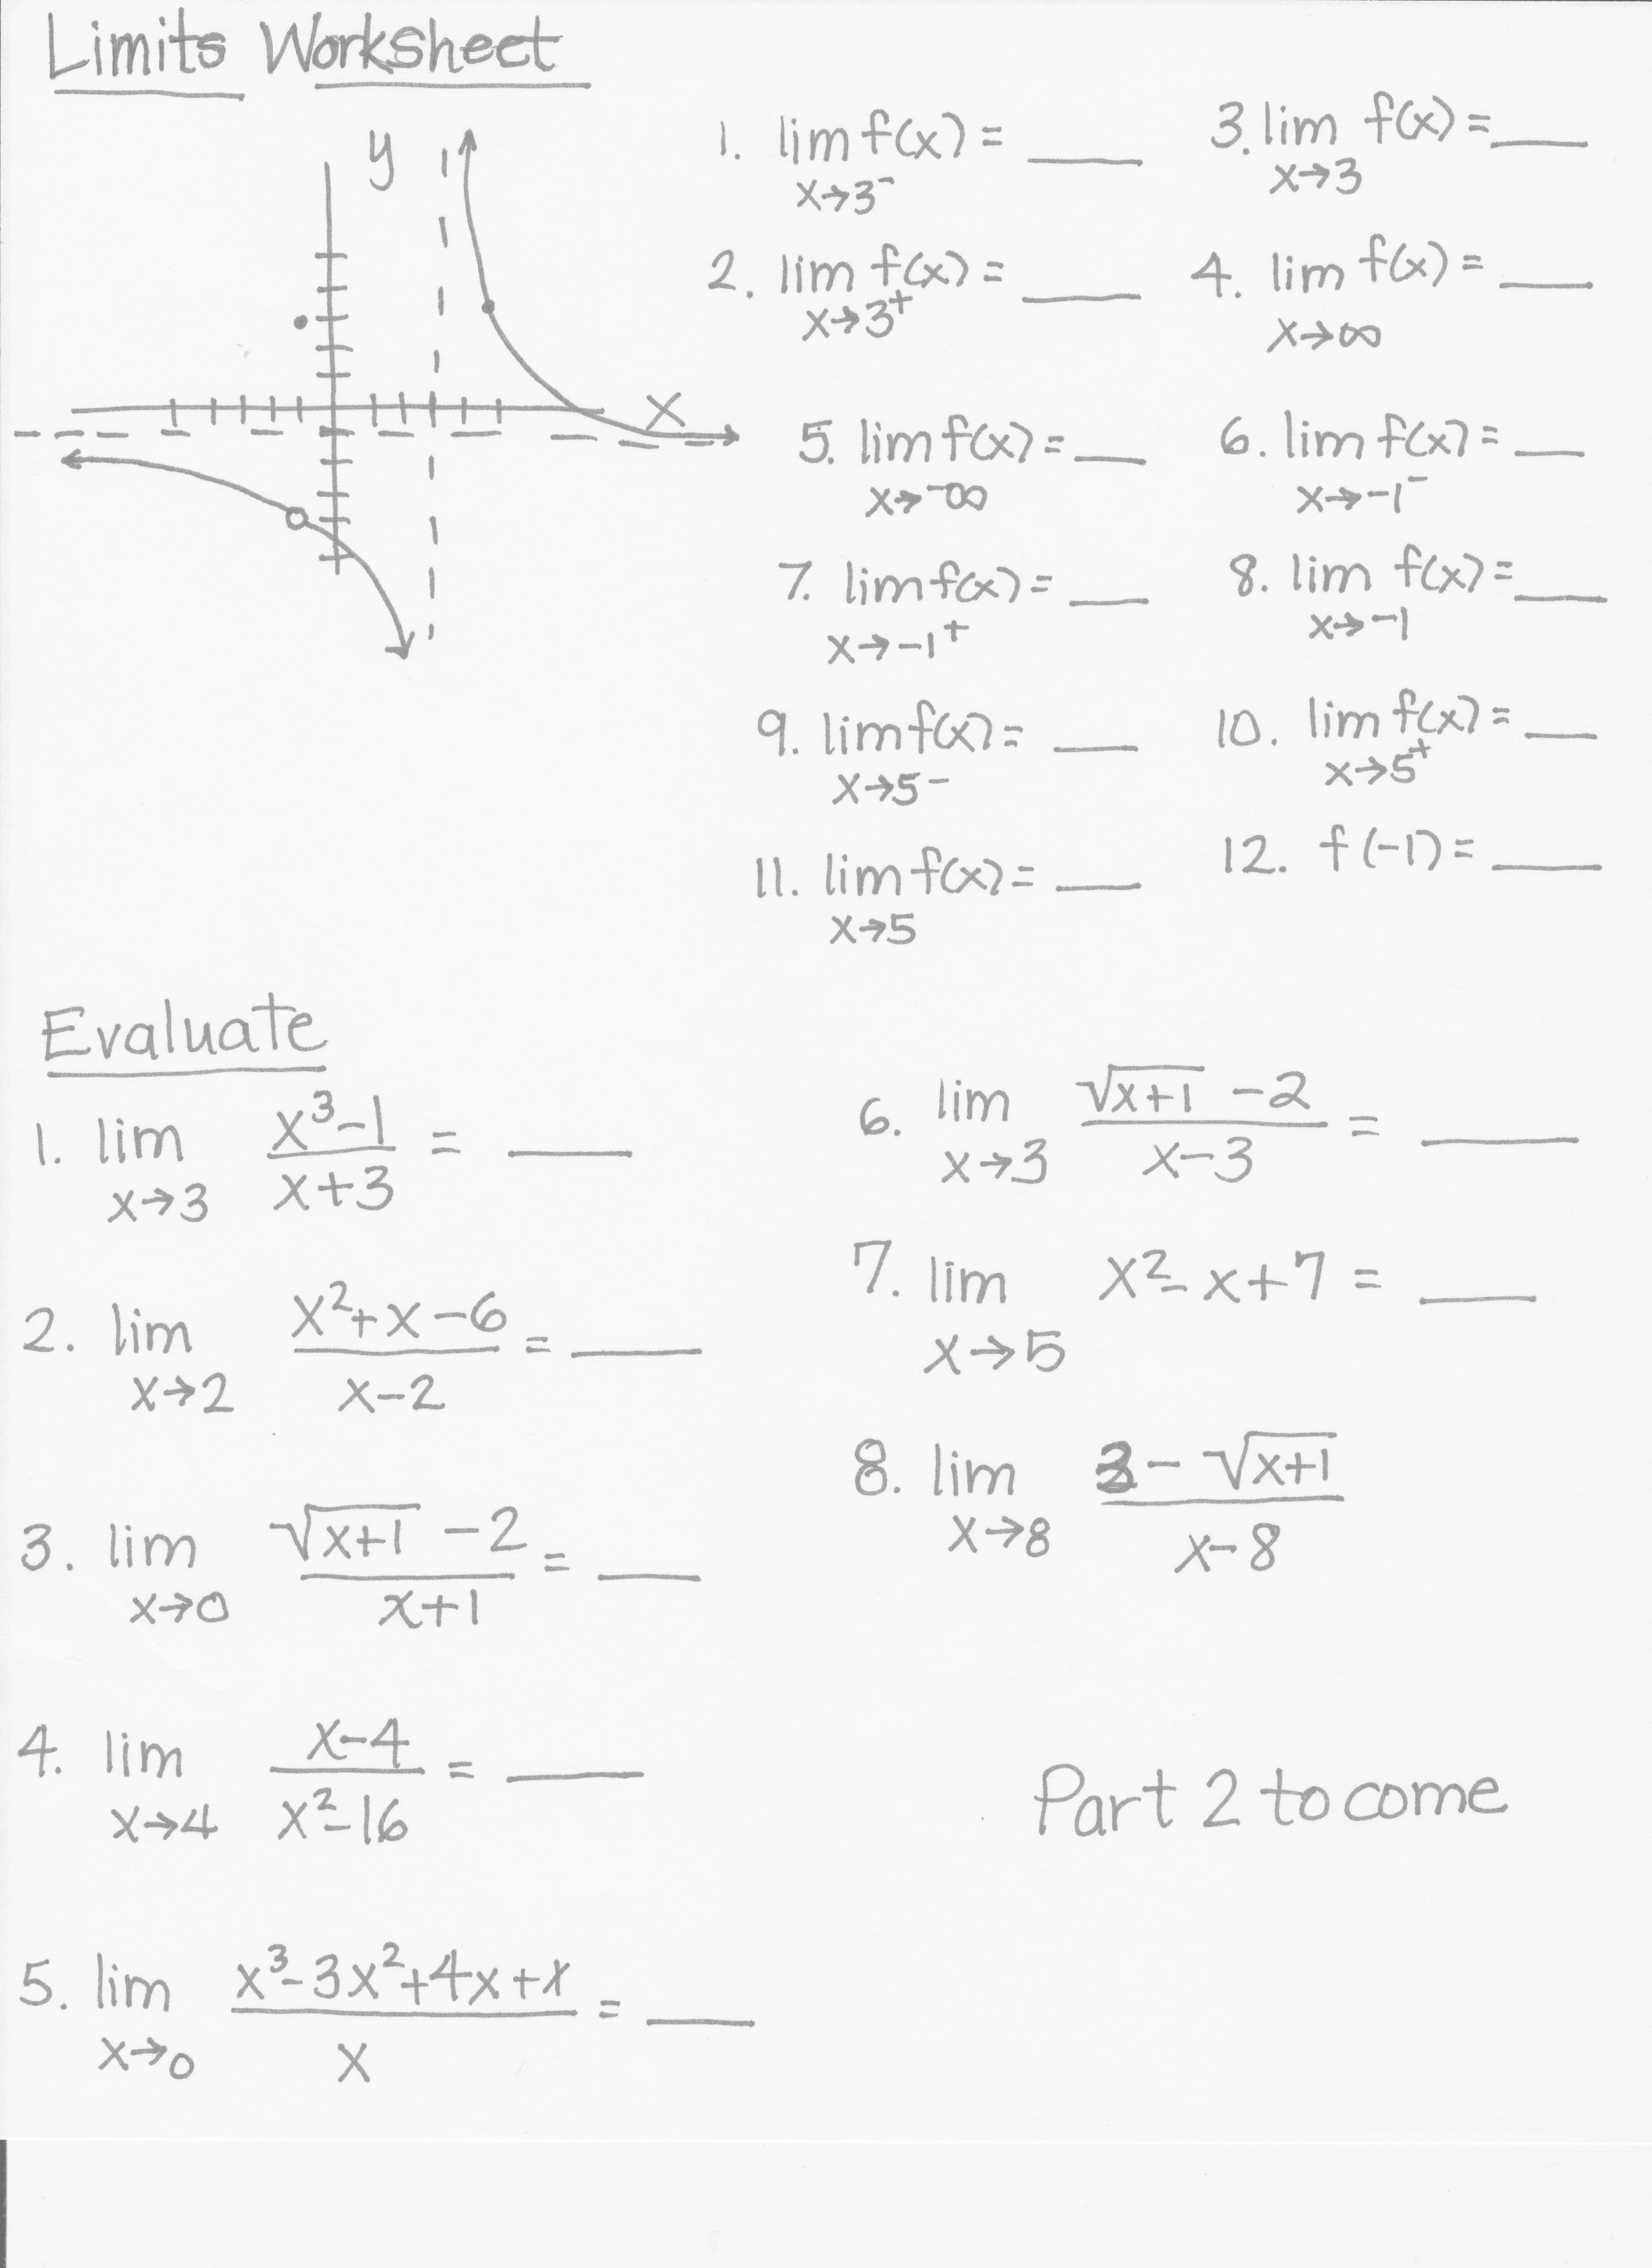 Limits Worksheet Printable